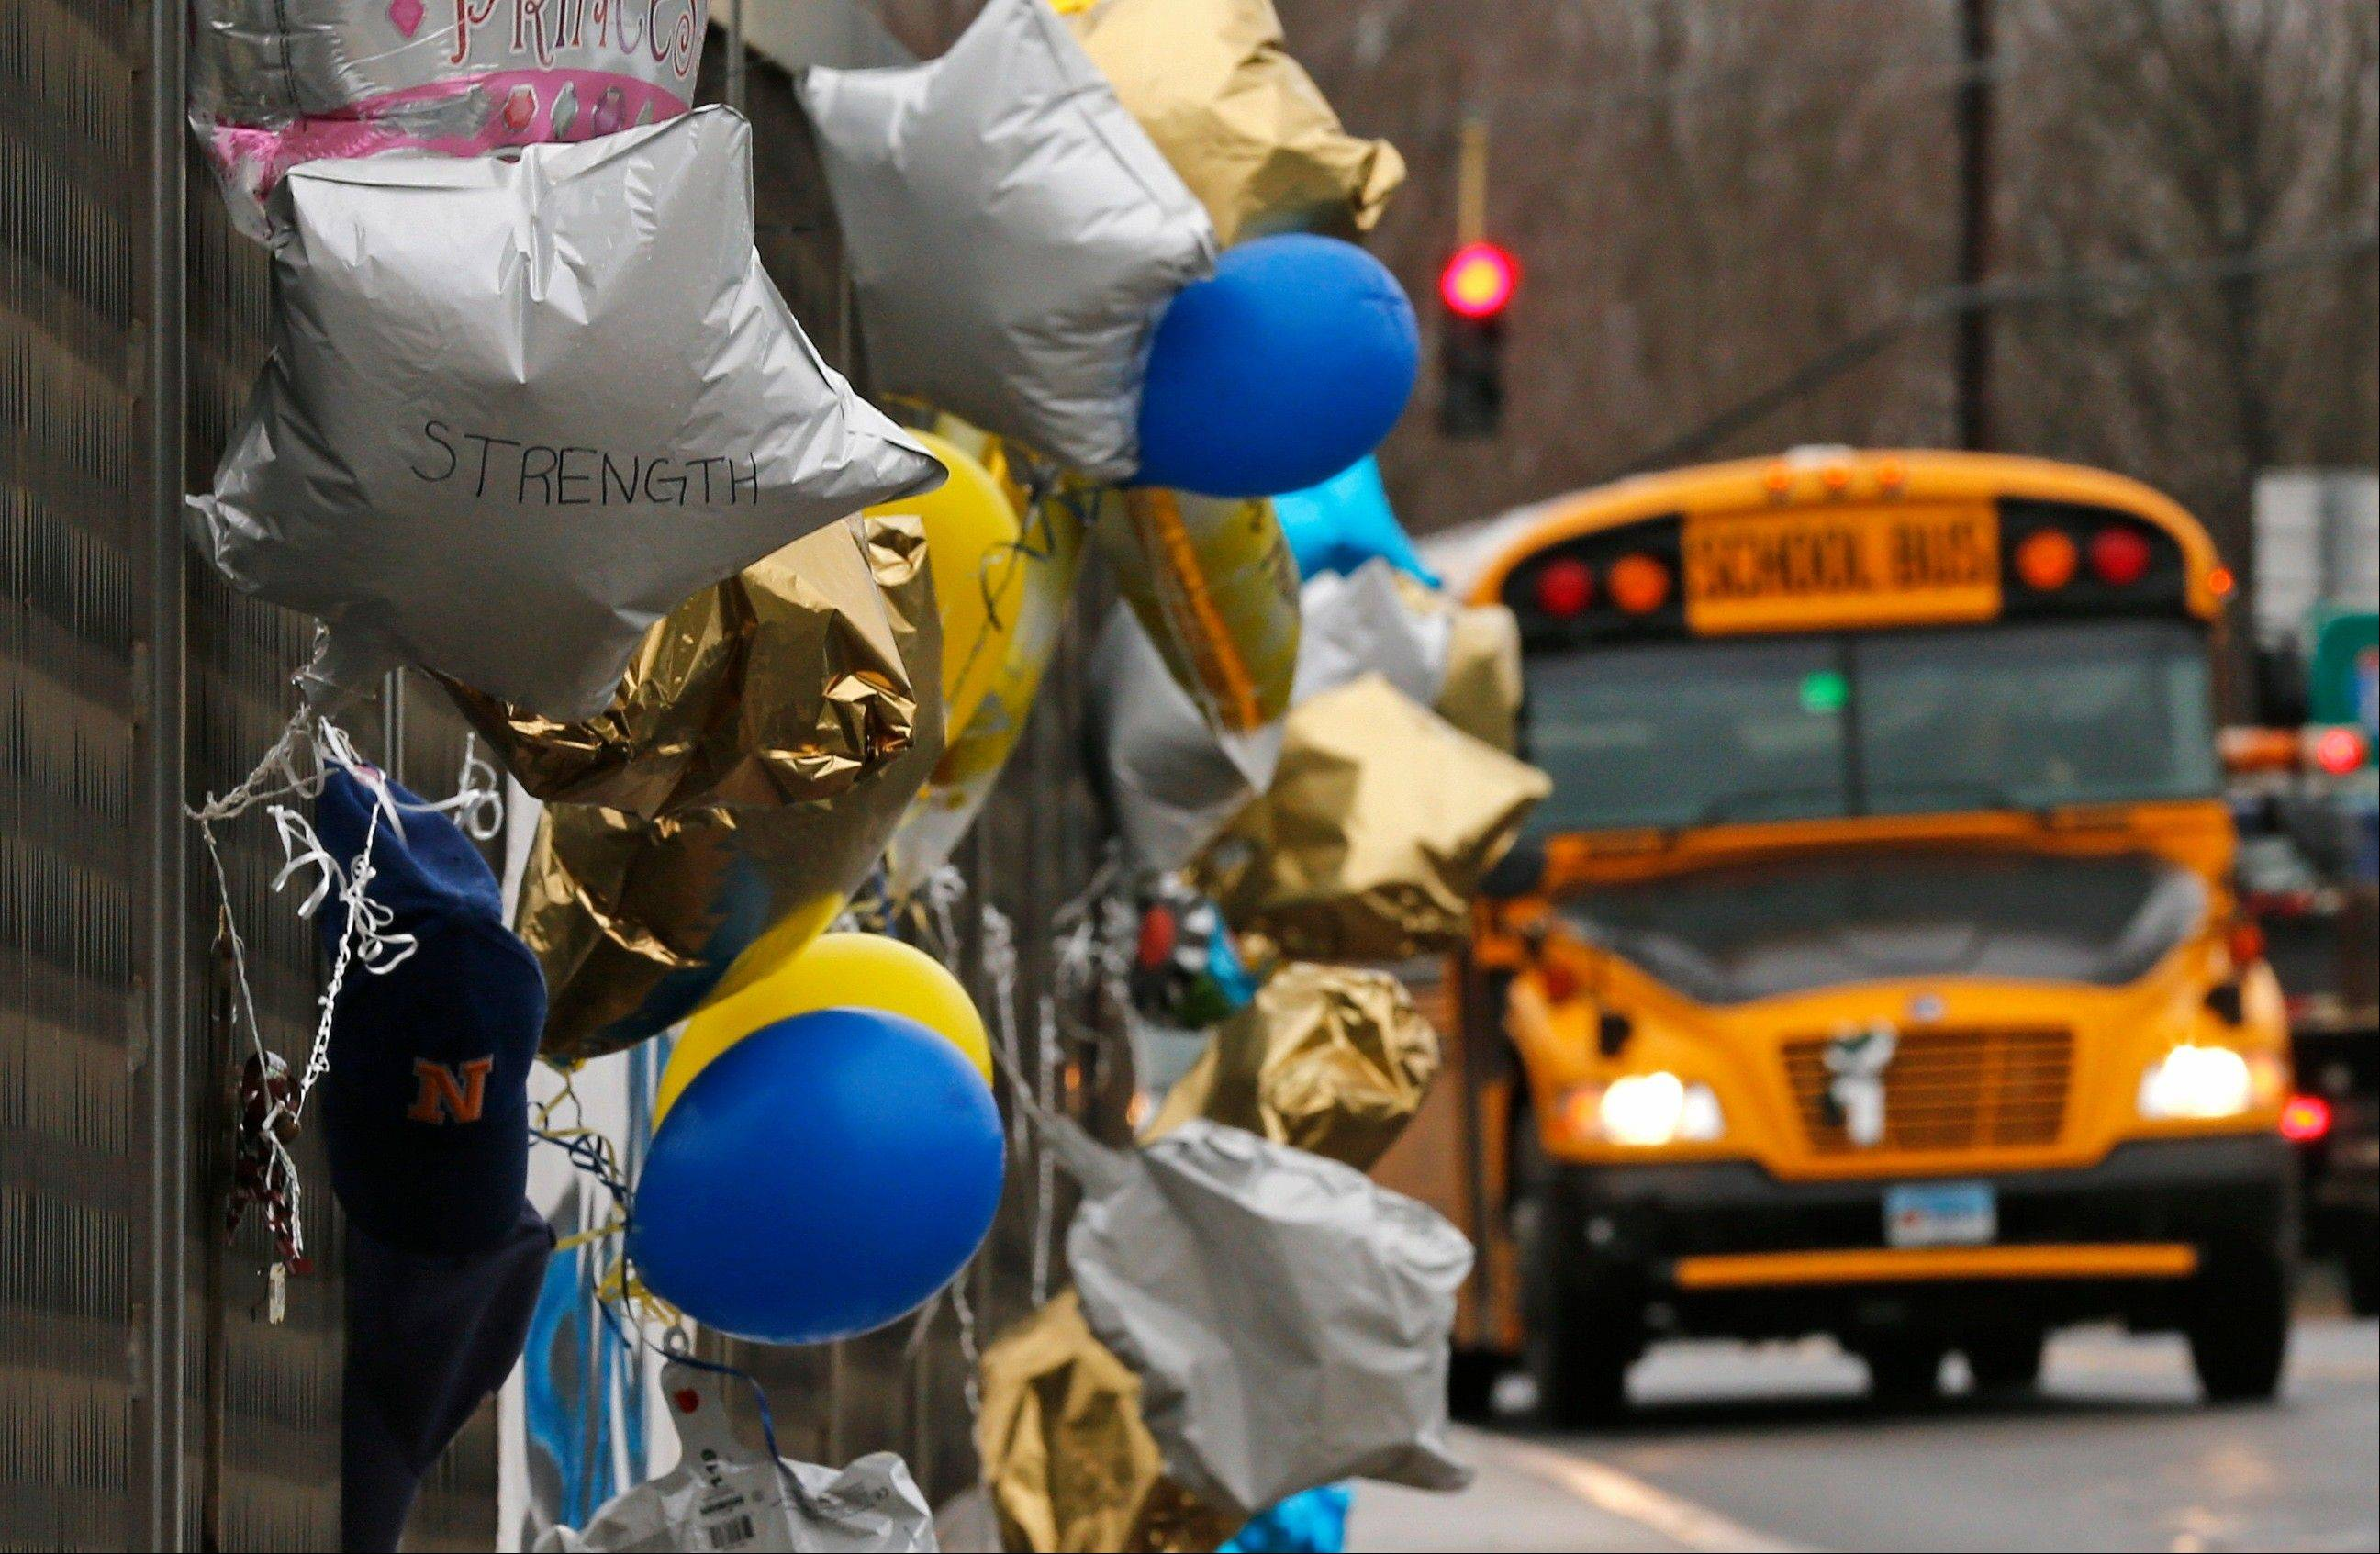 A school bus rolls toward a memorial for victims of the school shooting in Newtown, Conn., Tuesday, Dec. 18, 2012. Classes resume Tuesday for Newtown schools except those at Sandy Hook.